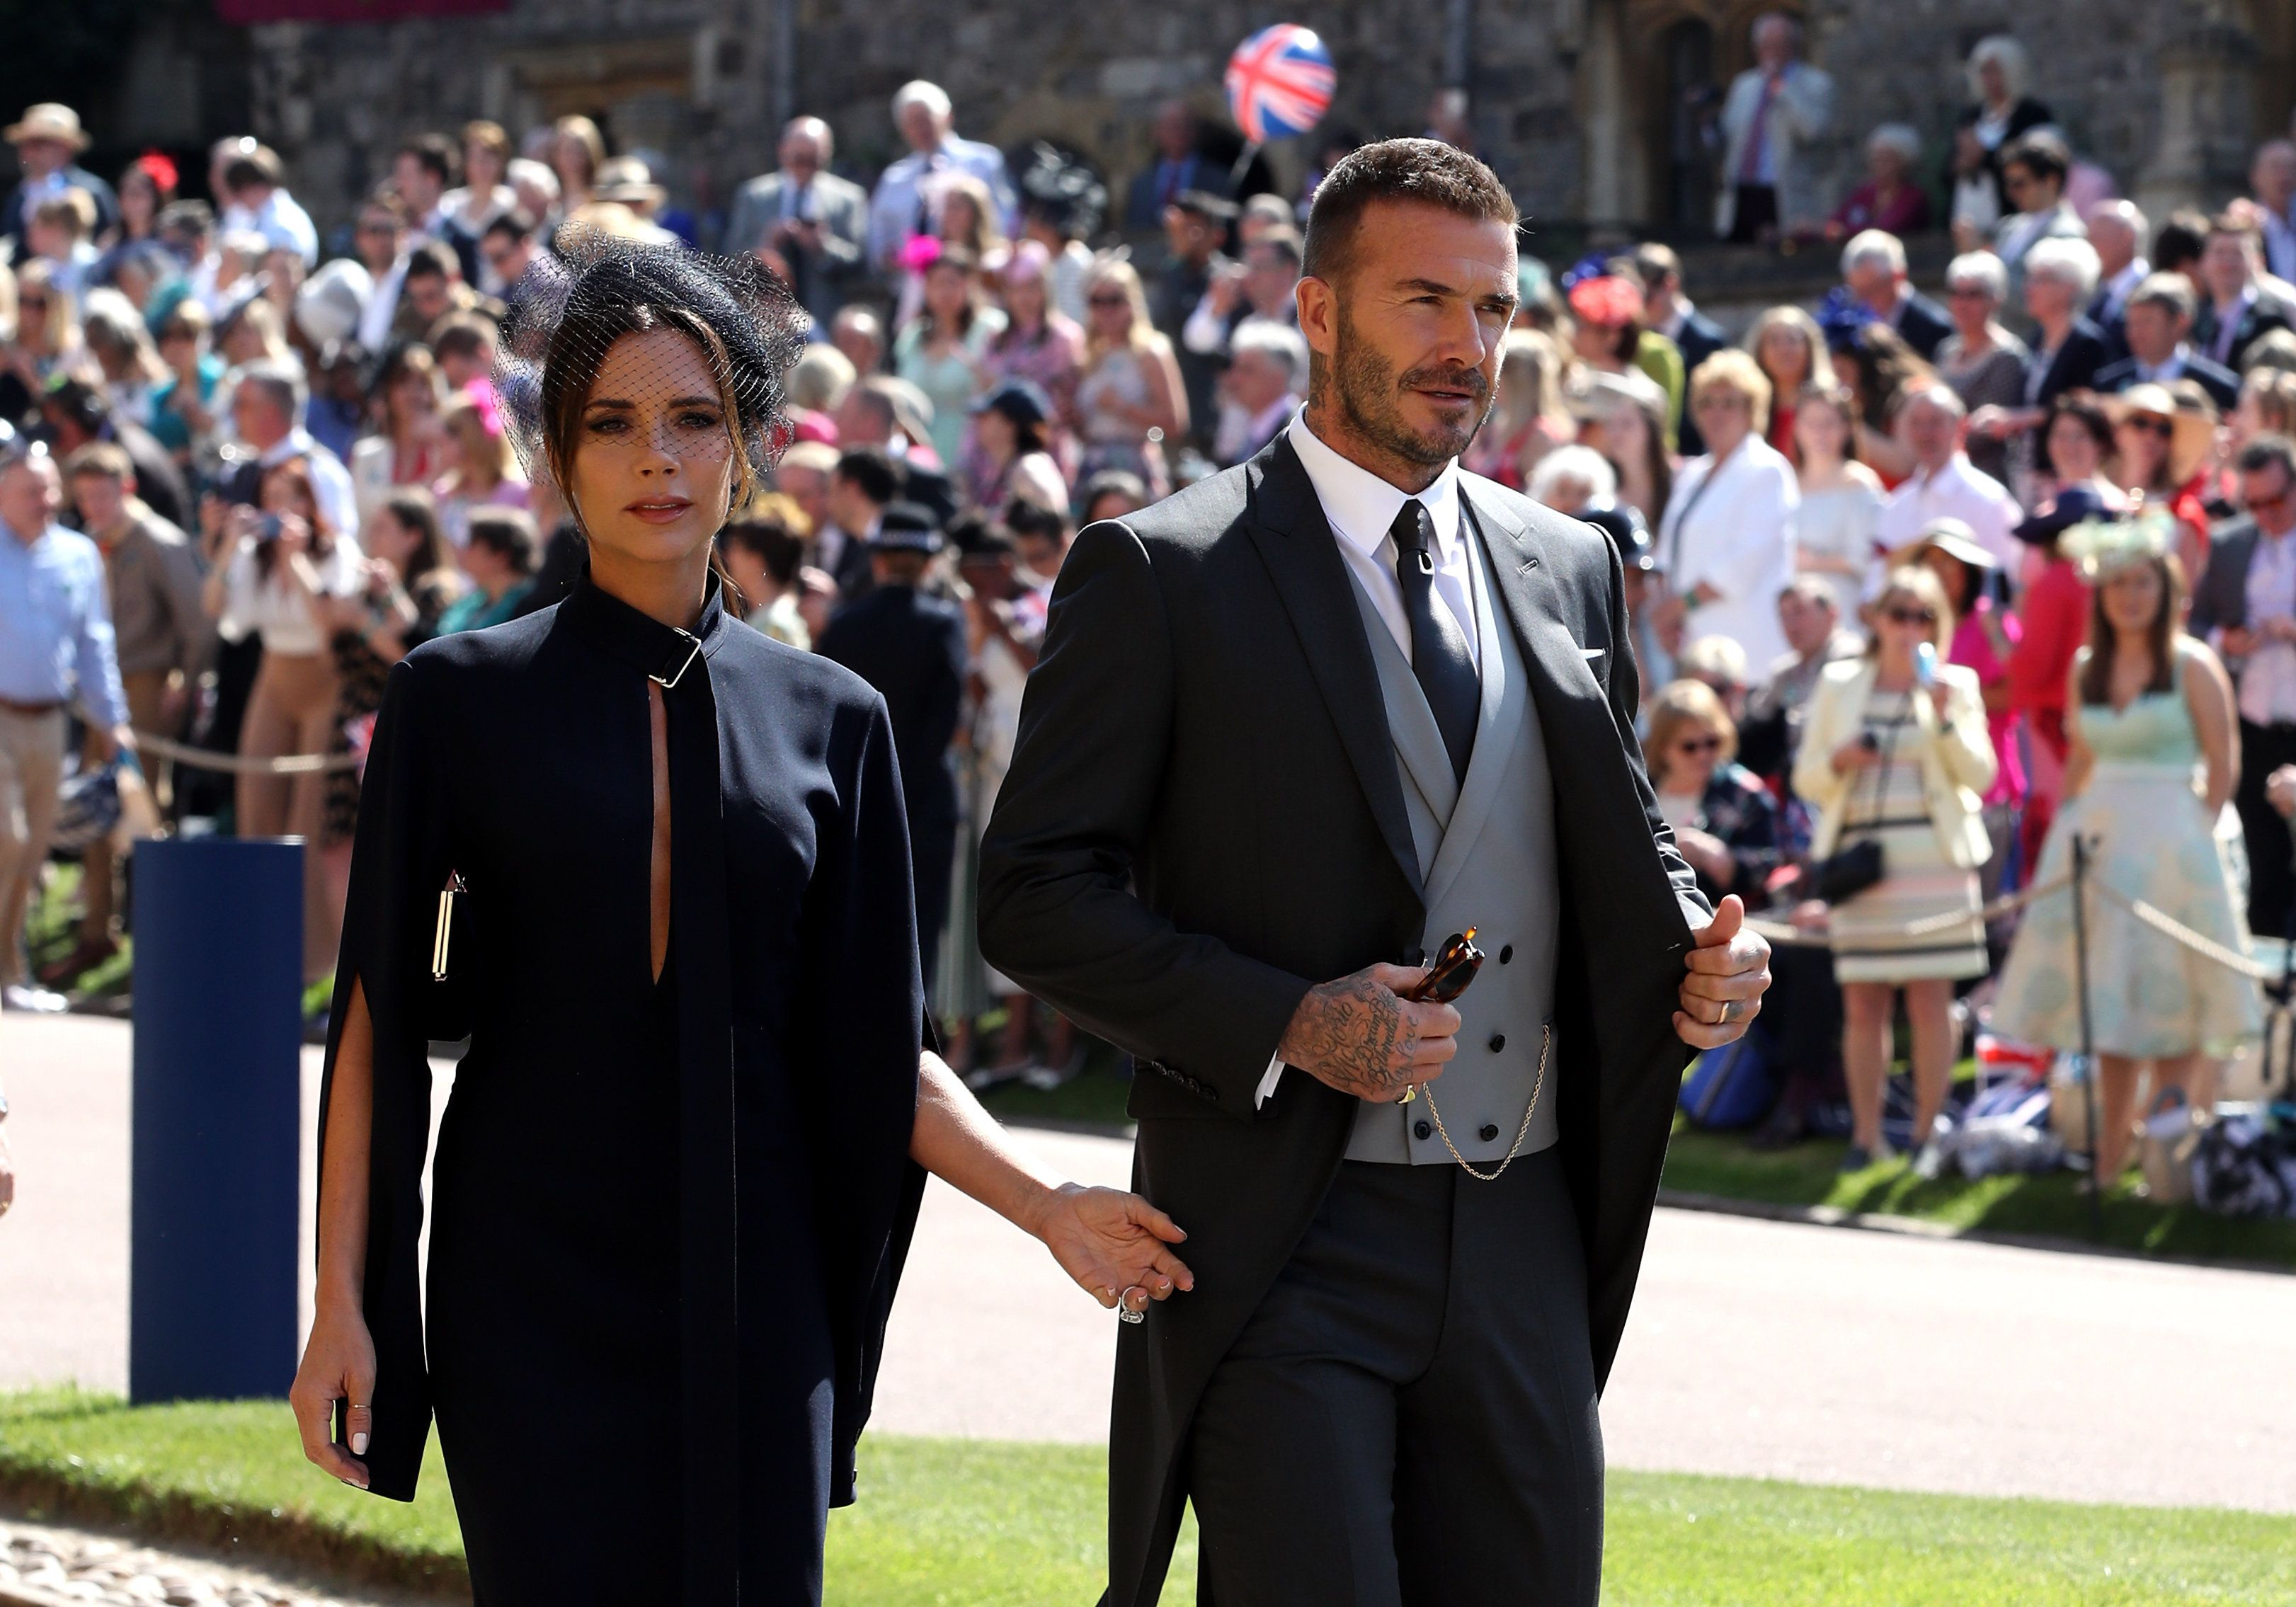 Victoria Beckham Wants You To Know She Did Have Fun At The Royal